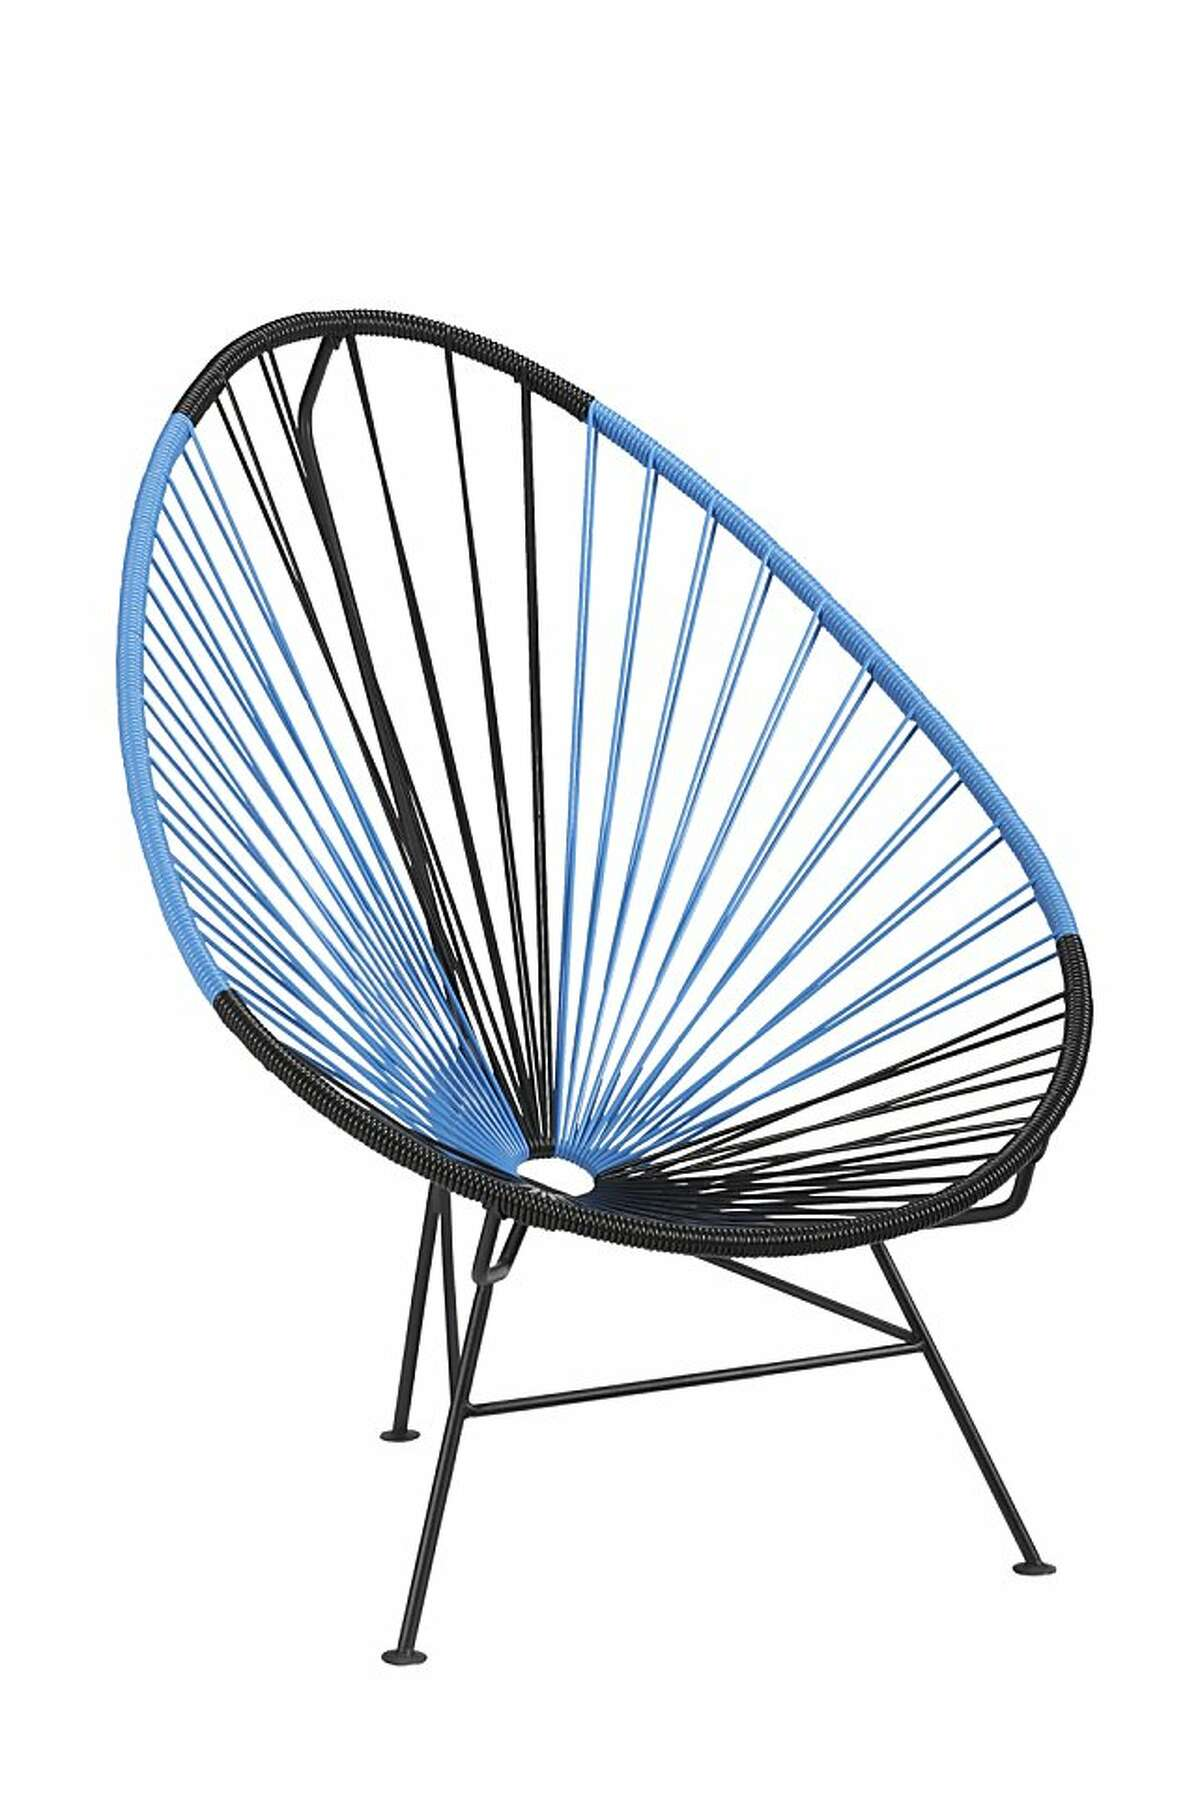 Less: $249 Acapulco black/blue lounge chair from CB2 (cb2.com)